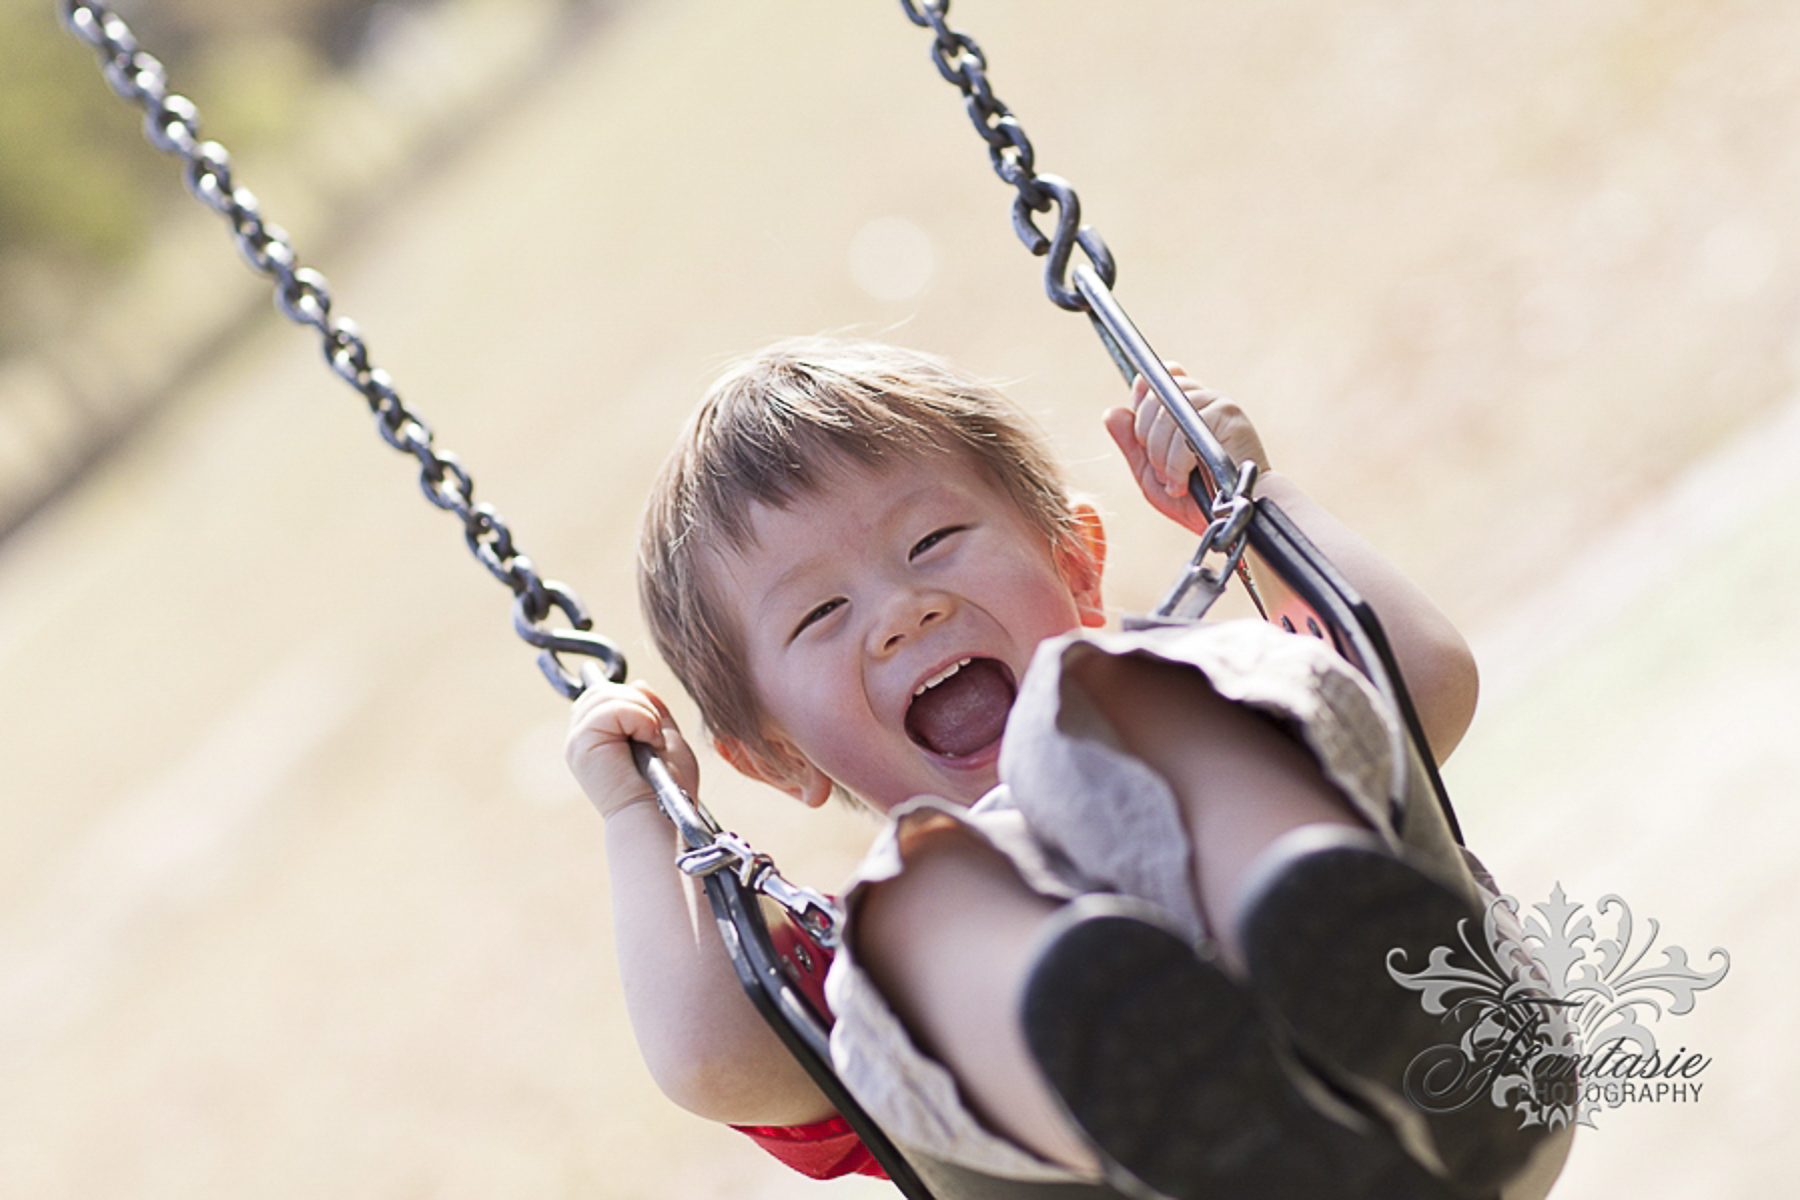 Kids toddler child brother sister sibling photography   Fantasie Photography